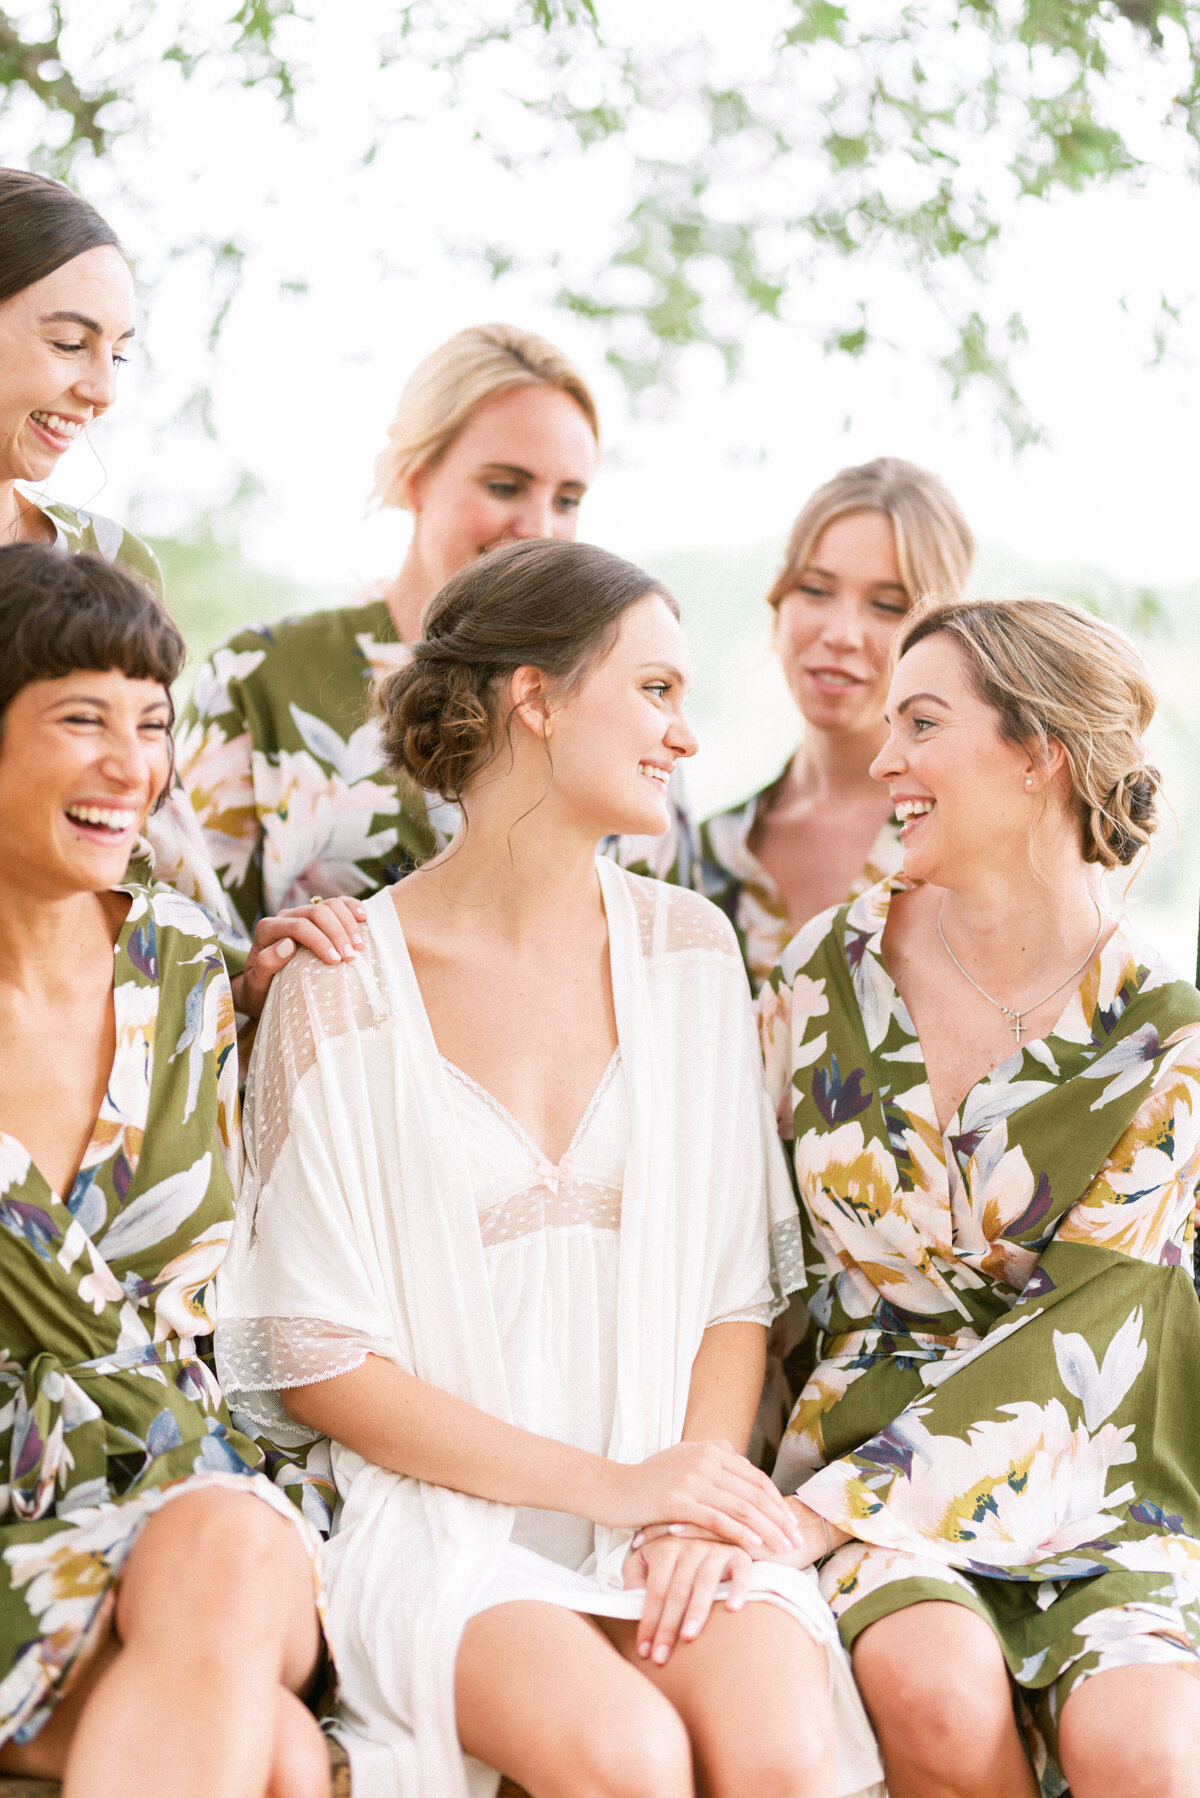 Bridesmaids in floral robes gather around their bride